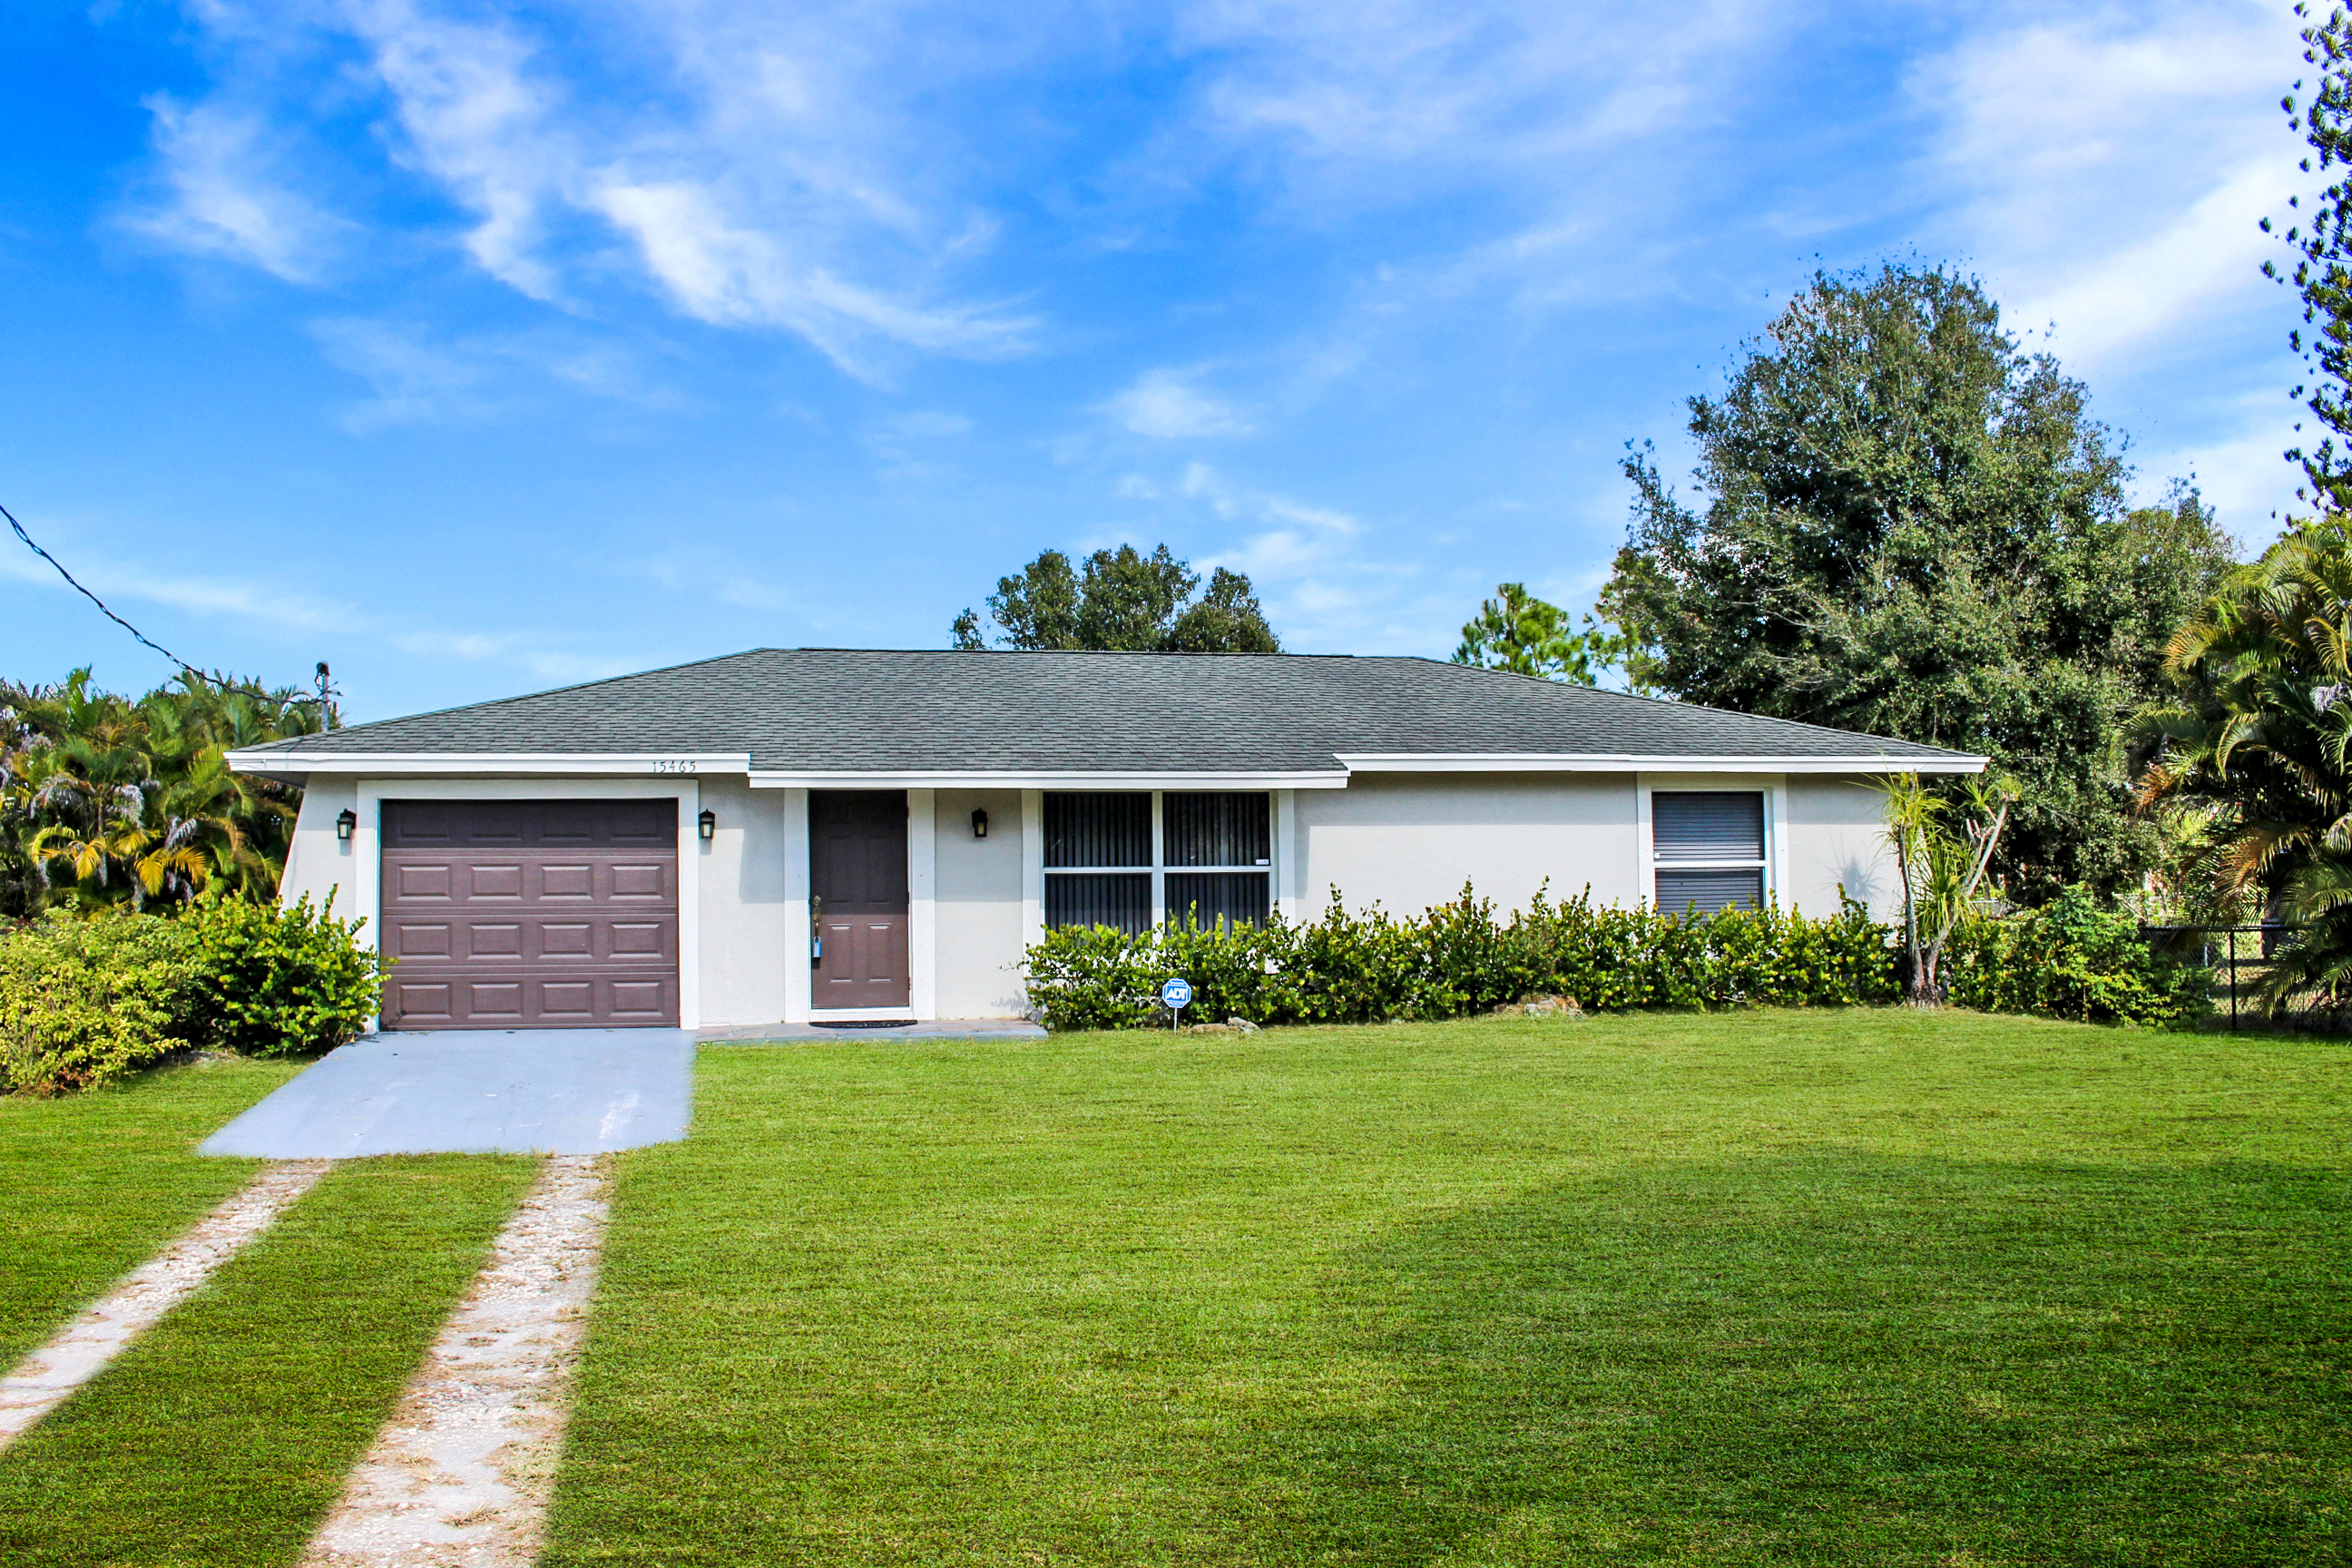 15465 San Diego Dr, Loxahatchee, FL 33470  was sold by top Loxahatchee agents in Loxahatchee Groves